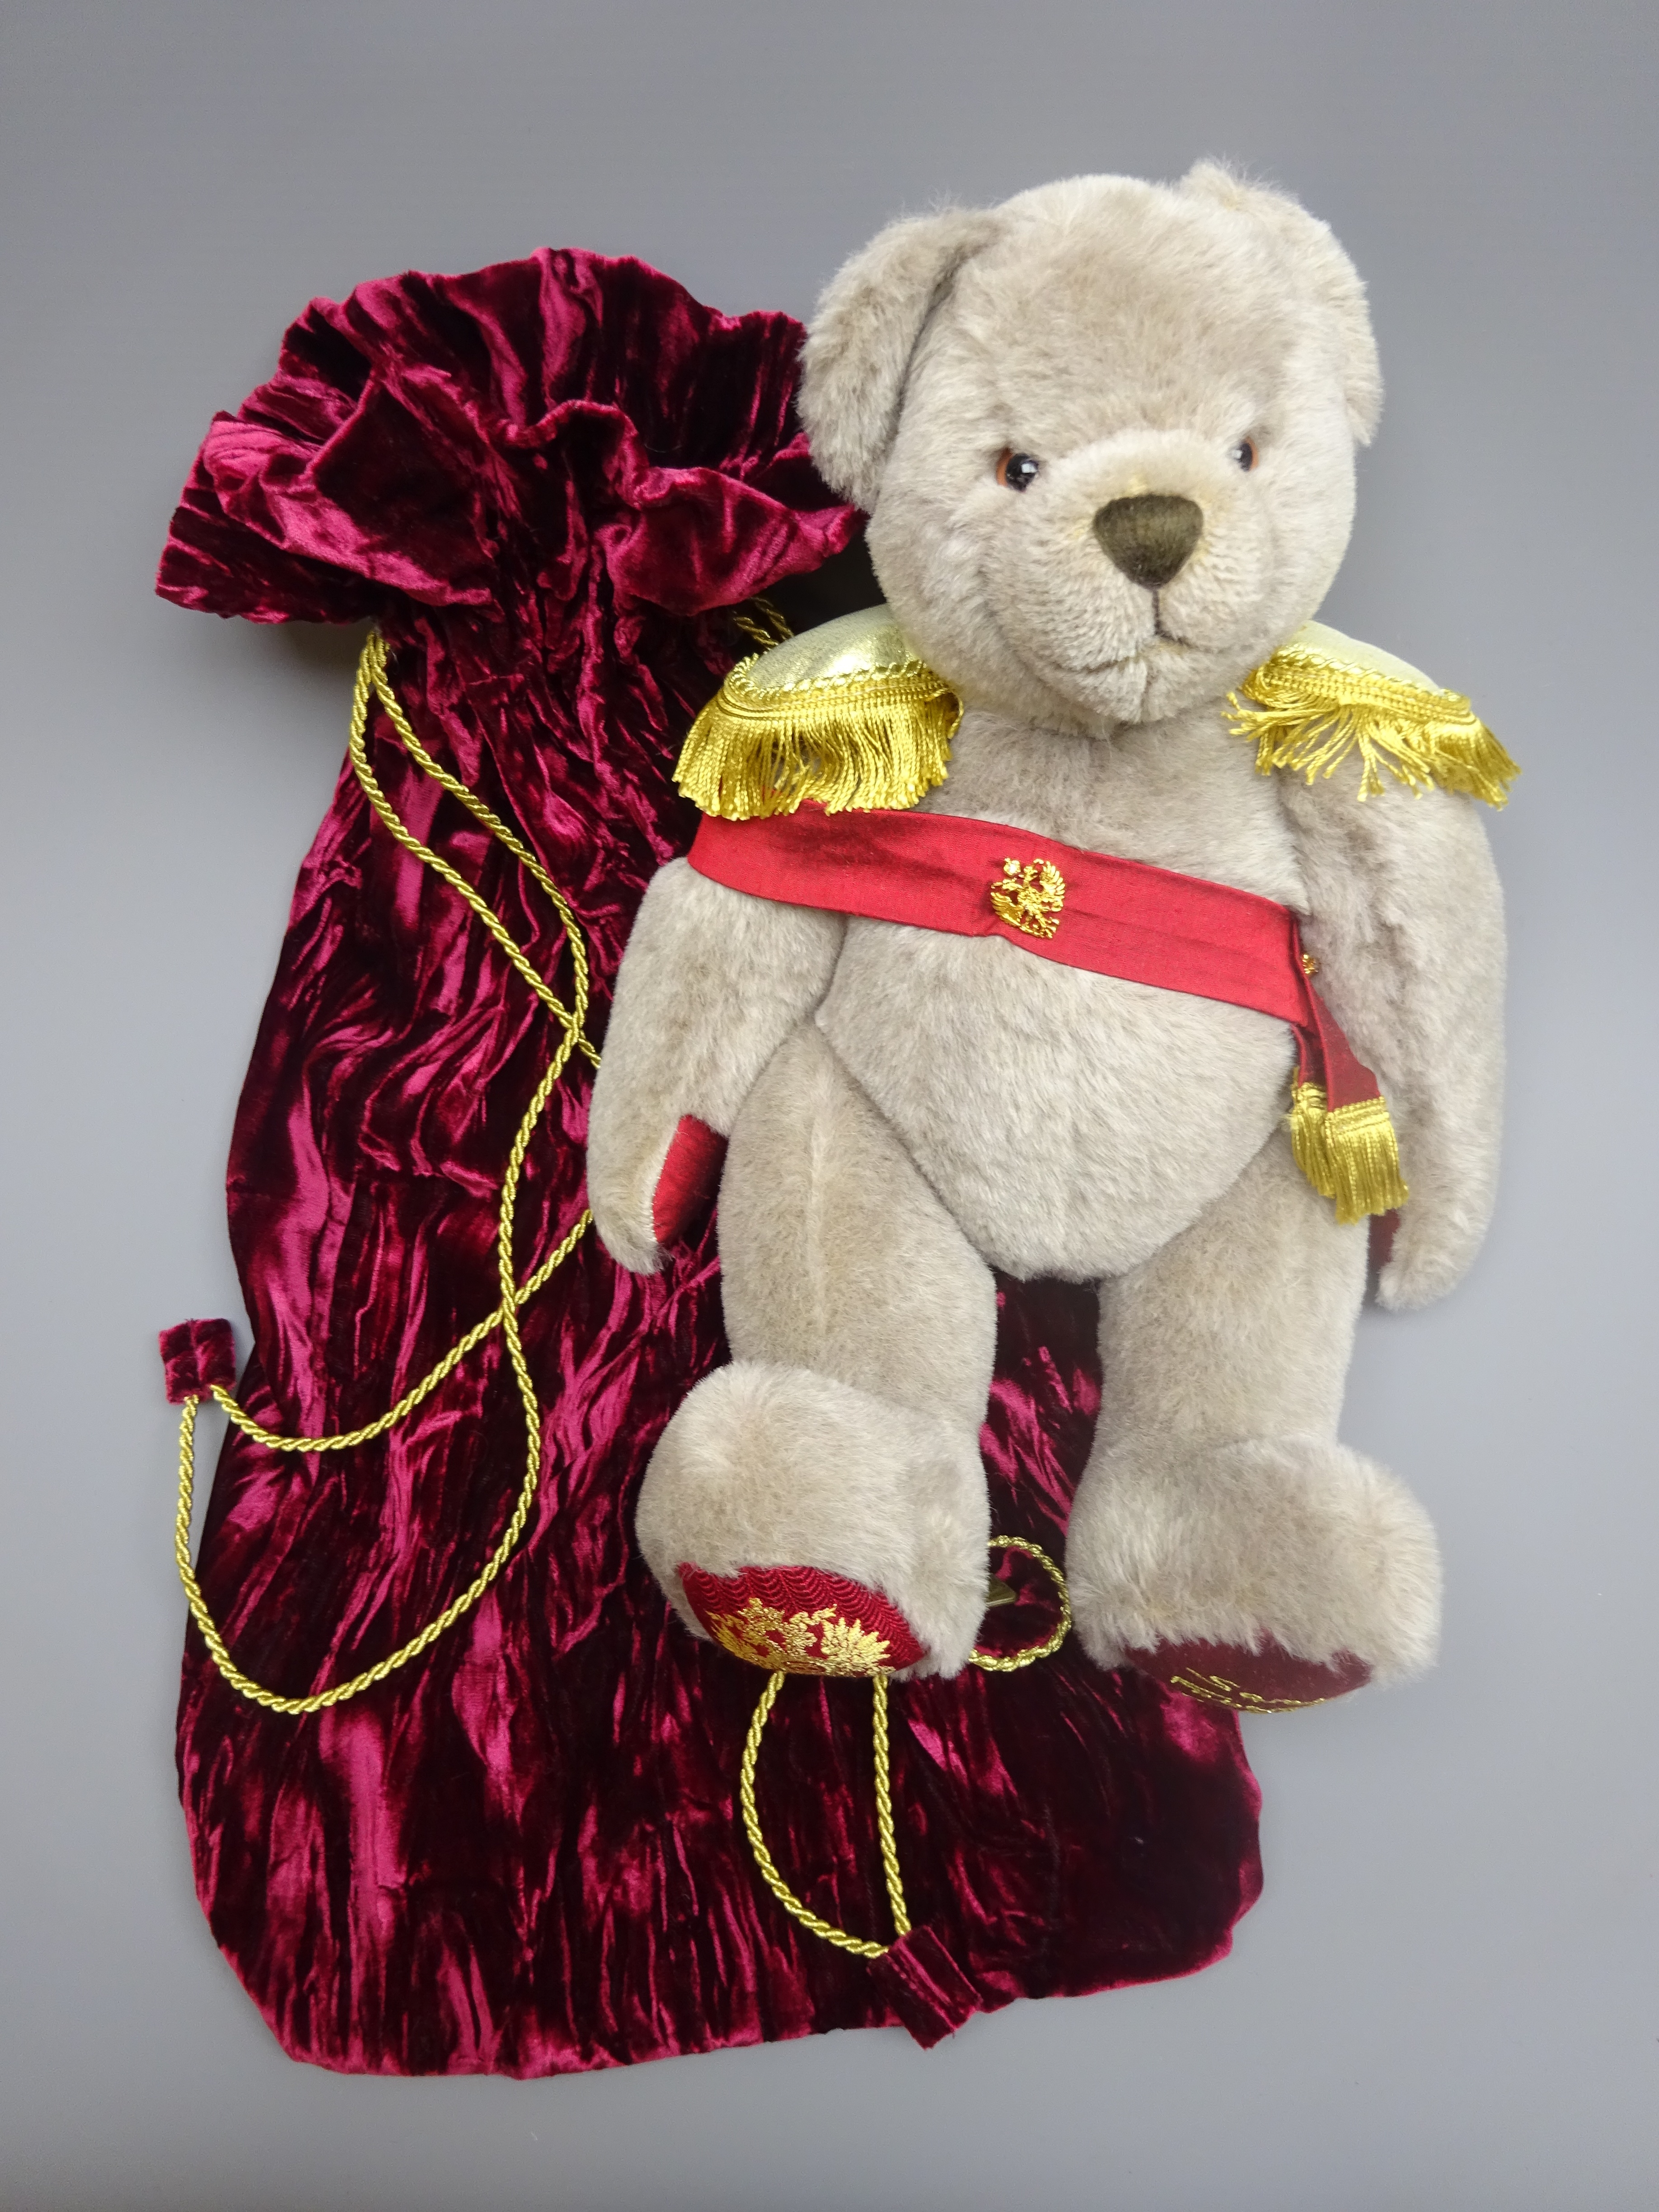 Lot 3030 - Hermann limited edition teddy bear designed by Sarah Faberge No.